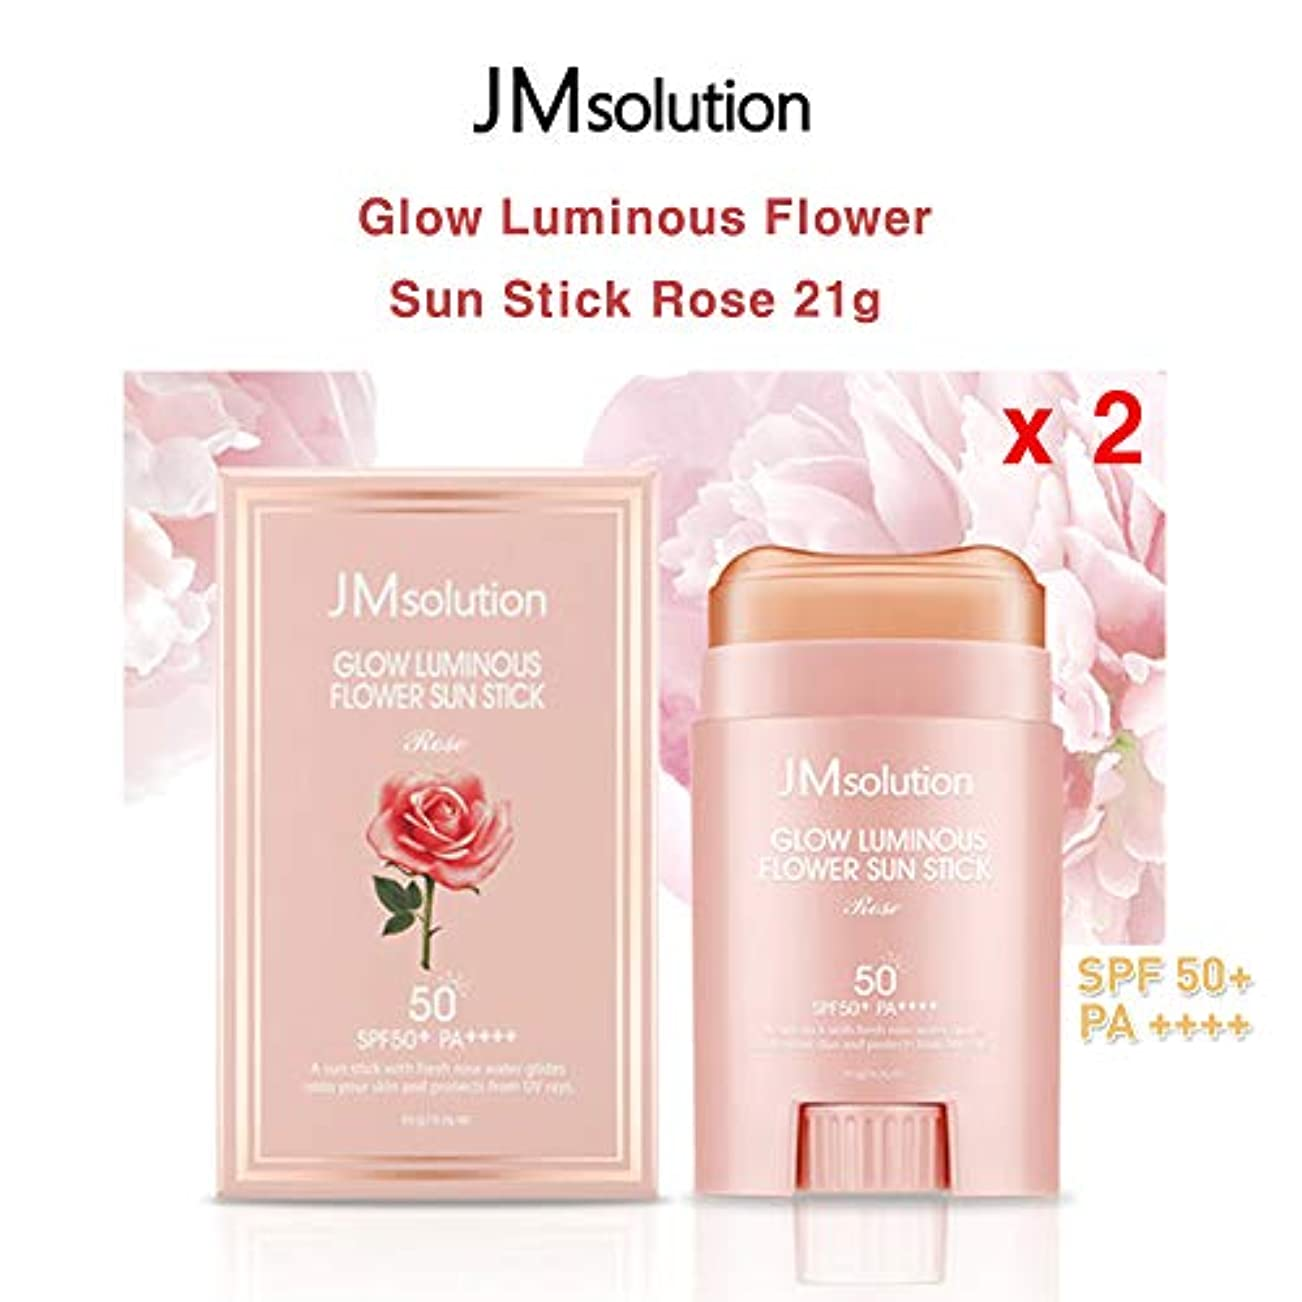 ポケット若さ溶けるJM Solution ★1+1★ Glow Luminous Flower Sun Stick Rose 21g (spf50 PA) 光る輝く花Sun Stick Rose